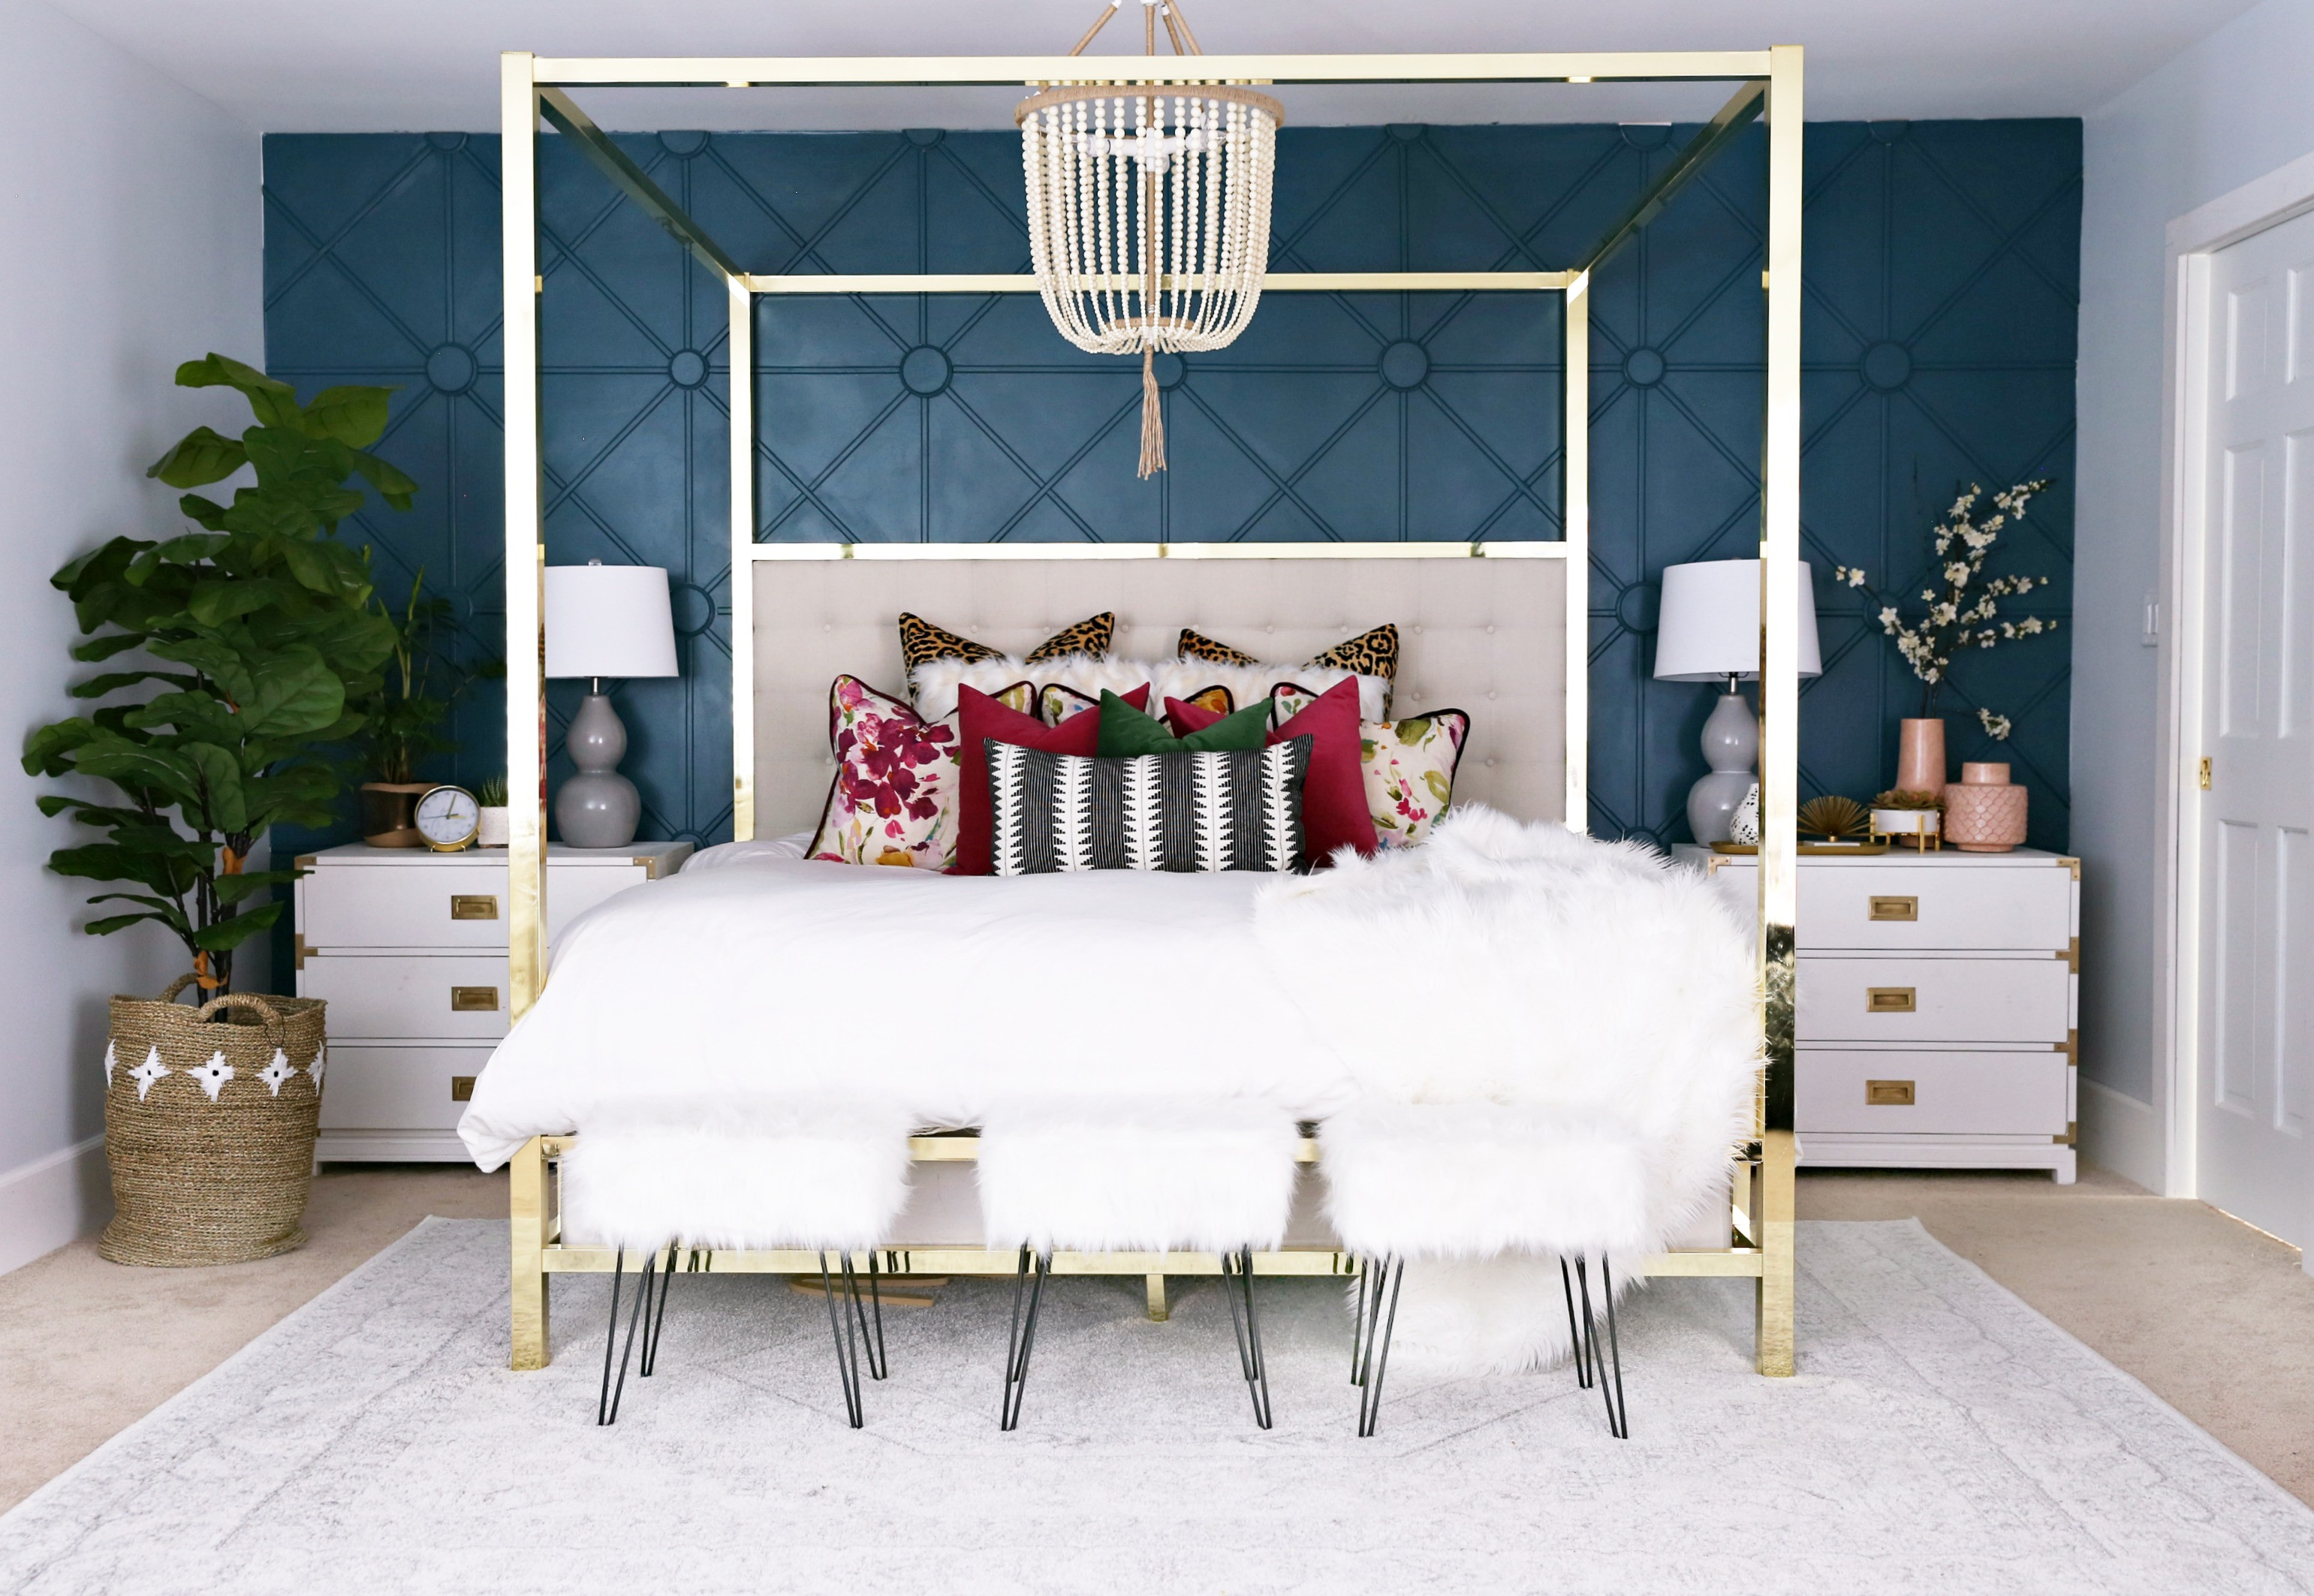 Best ideas about Master Bedroom Accent Wall . Save or Pin Master Bedroom Makeover with Awesome Accent Wall Classy Now.